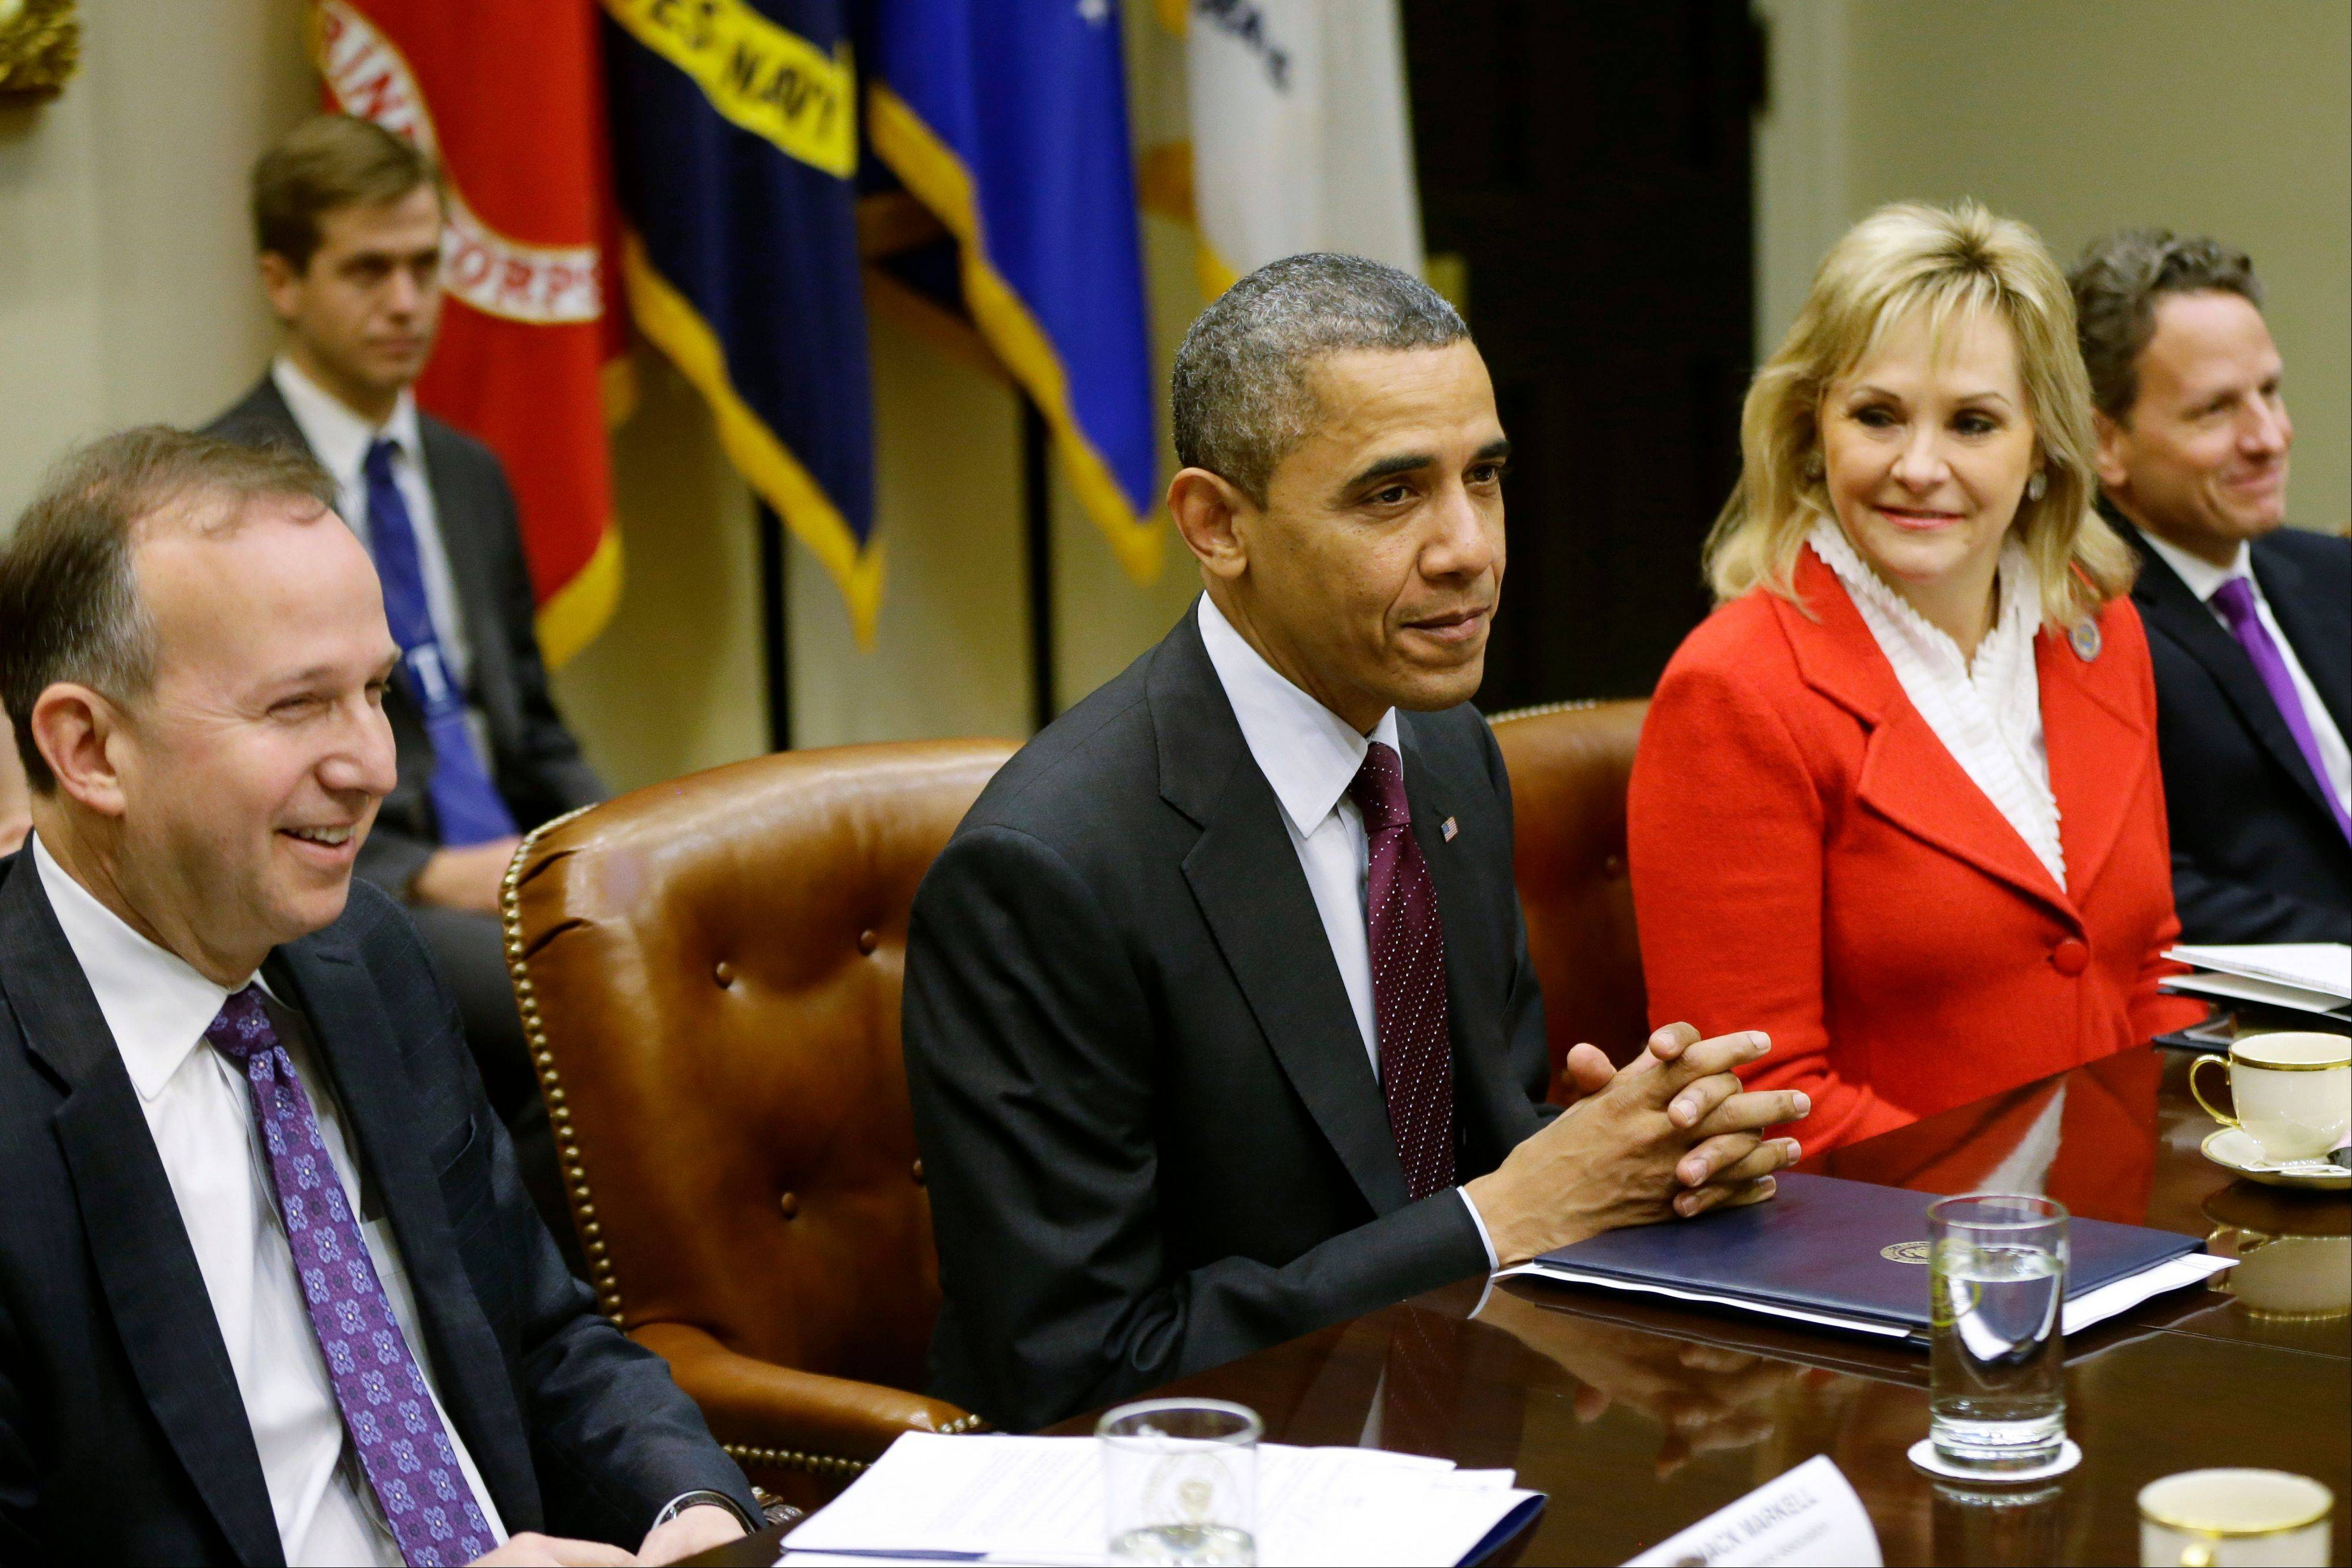 President Barack Obama, flanked by National Governors Association (NGA) Chairman, Delaware Gov. Jack Martell, and NGA Vice Chair, Oklahoma Gov. Mary Fallin, meets with the NGA executive committee regarding the fiscal cliff, Tuesday, Dec. 4, 2012, in the Roosevelt Room at the White House in Washington. Treasury Secretary Tim Geithner is at right.